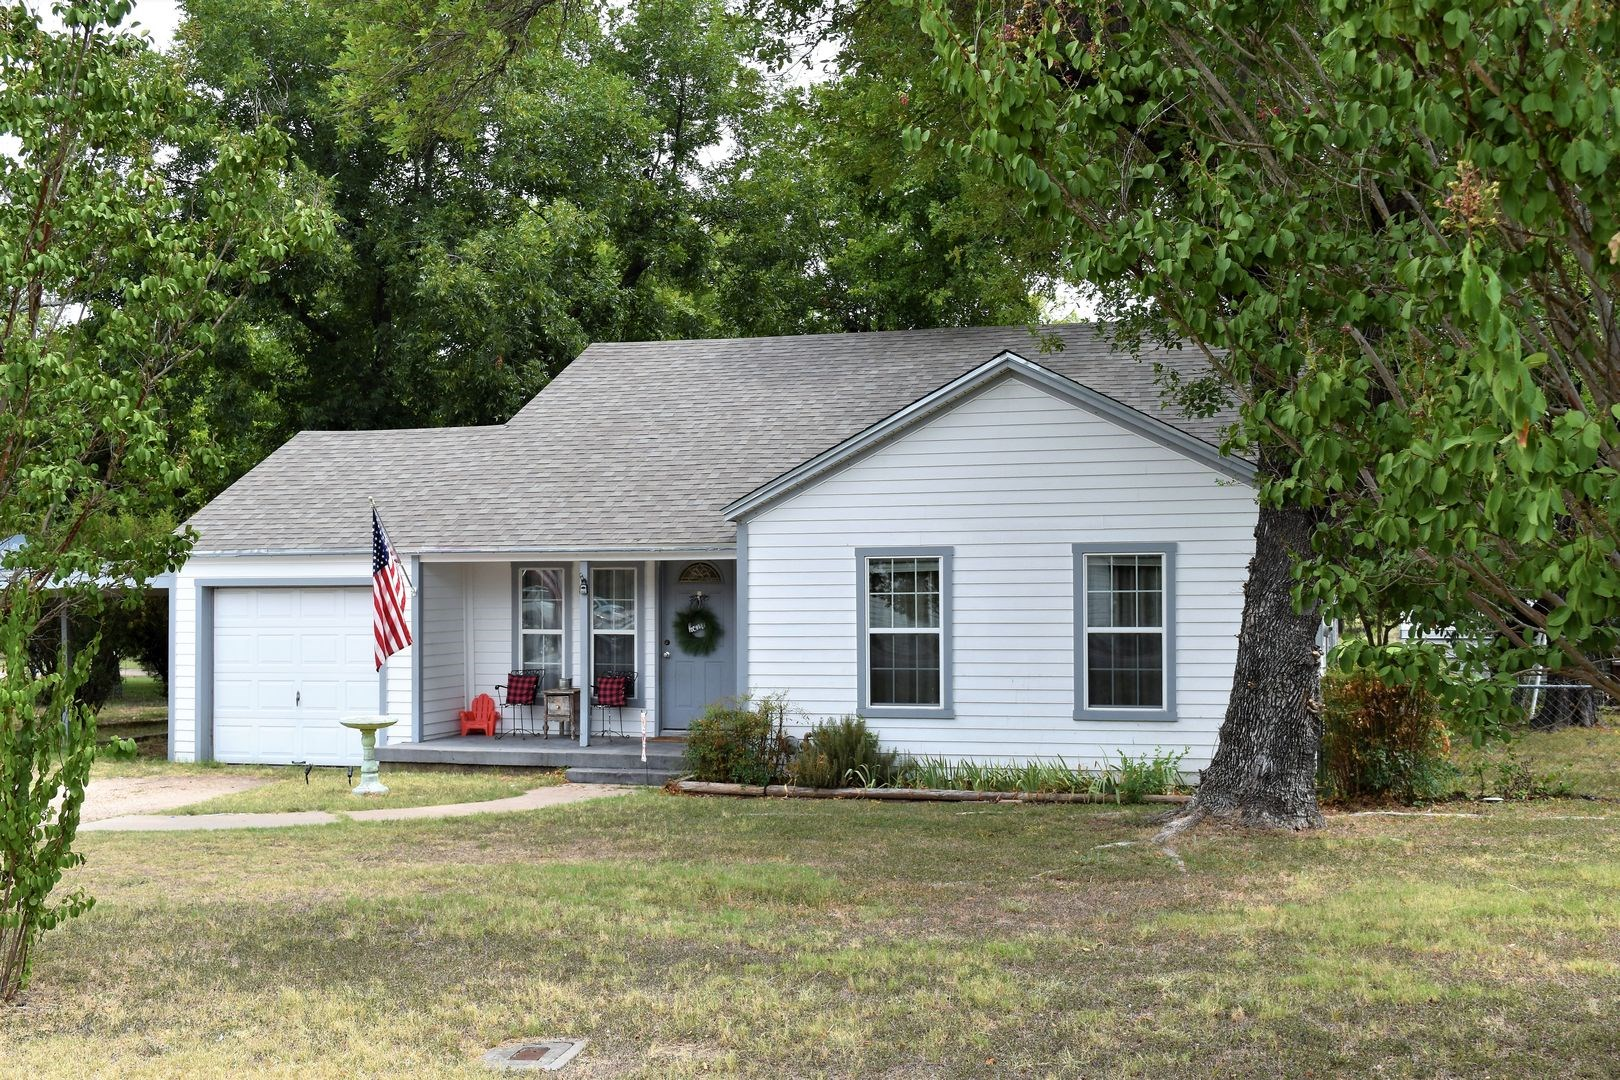 Home for Sale, Gatesville, TX Coryell County